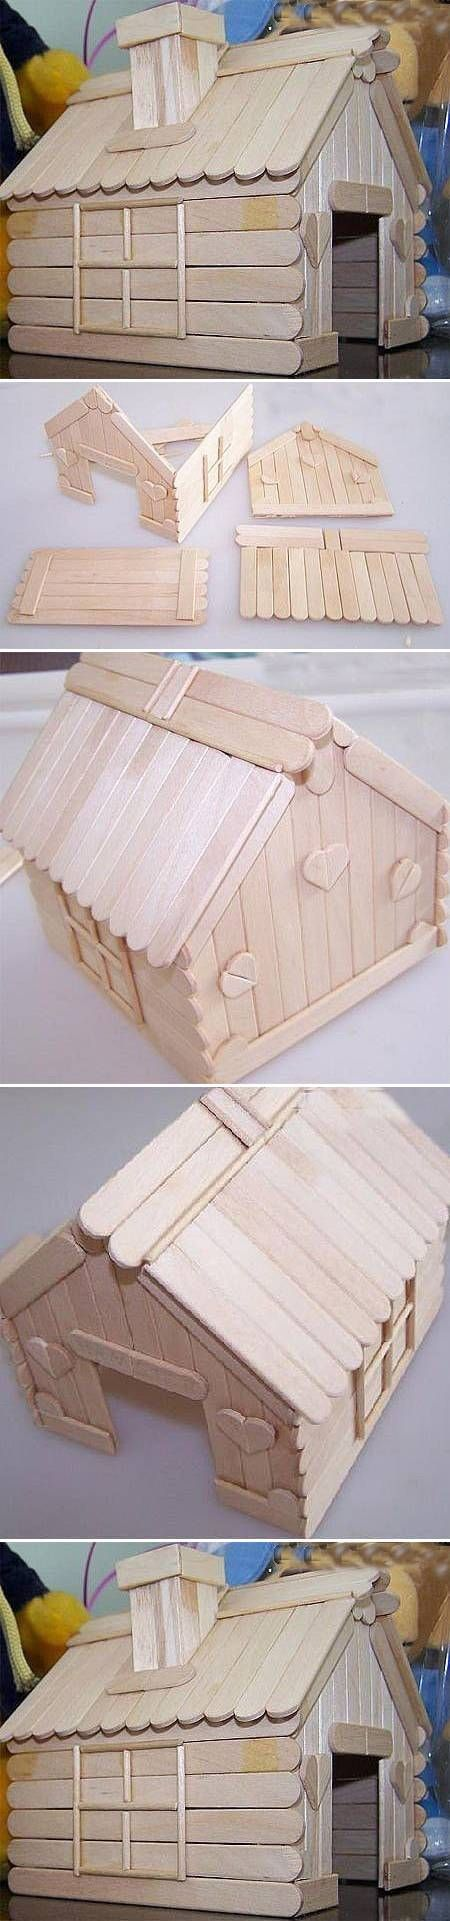 Long wooden craft sticks - How To Build A House With Popsicle Sticks Step By Step Diy Tutorial Instructions How